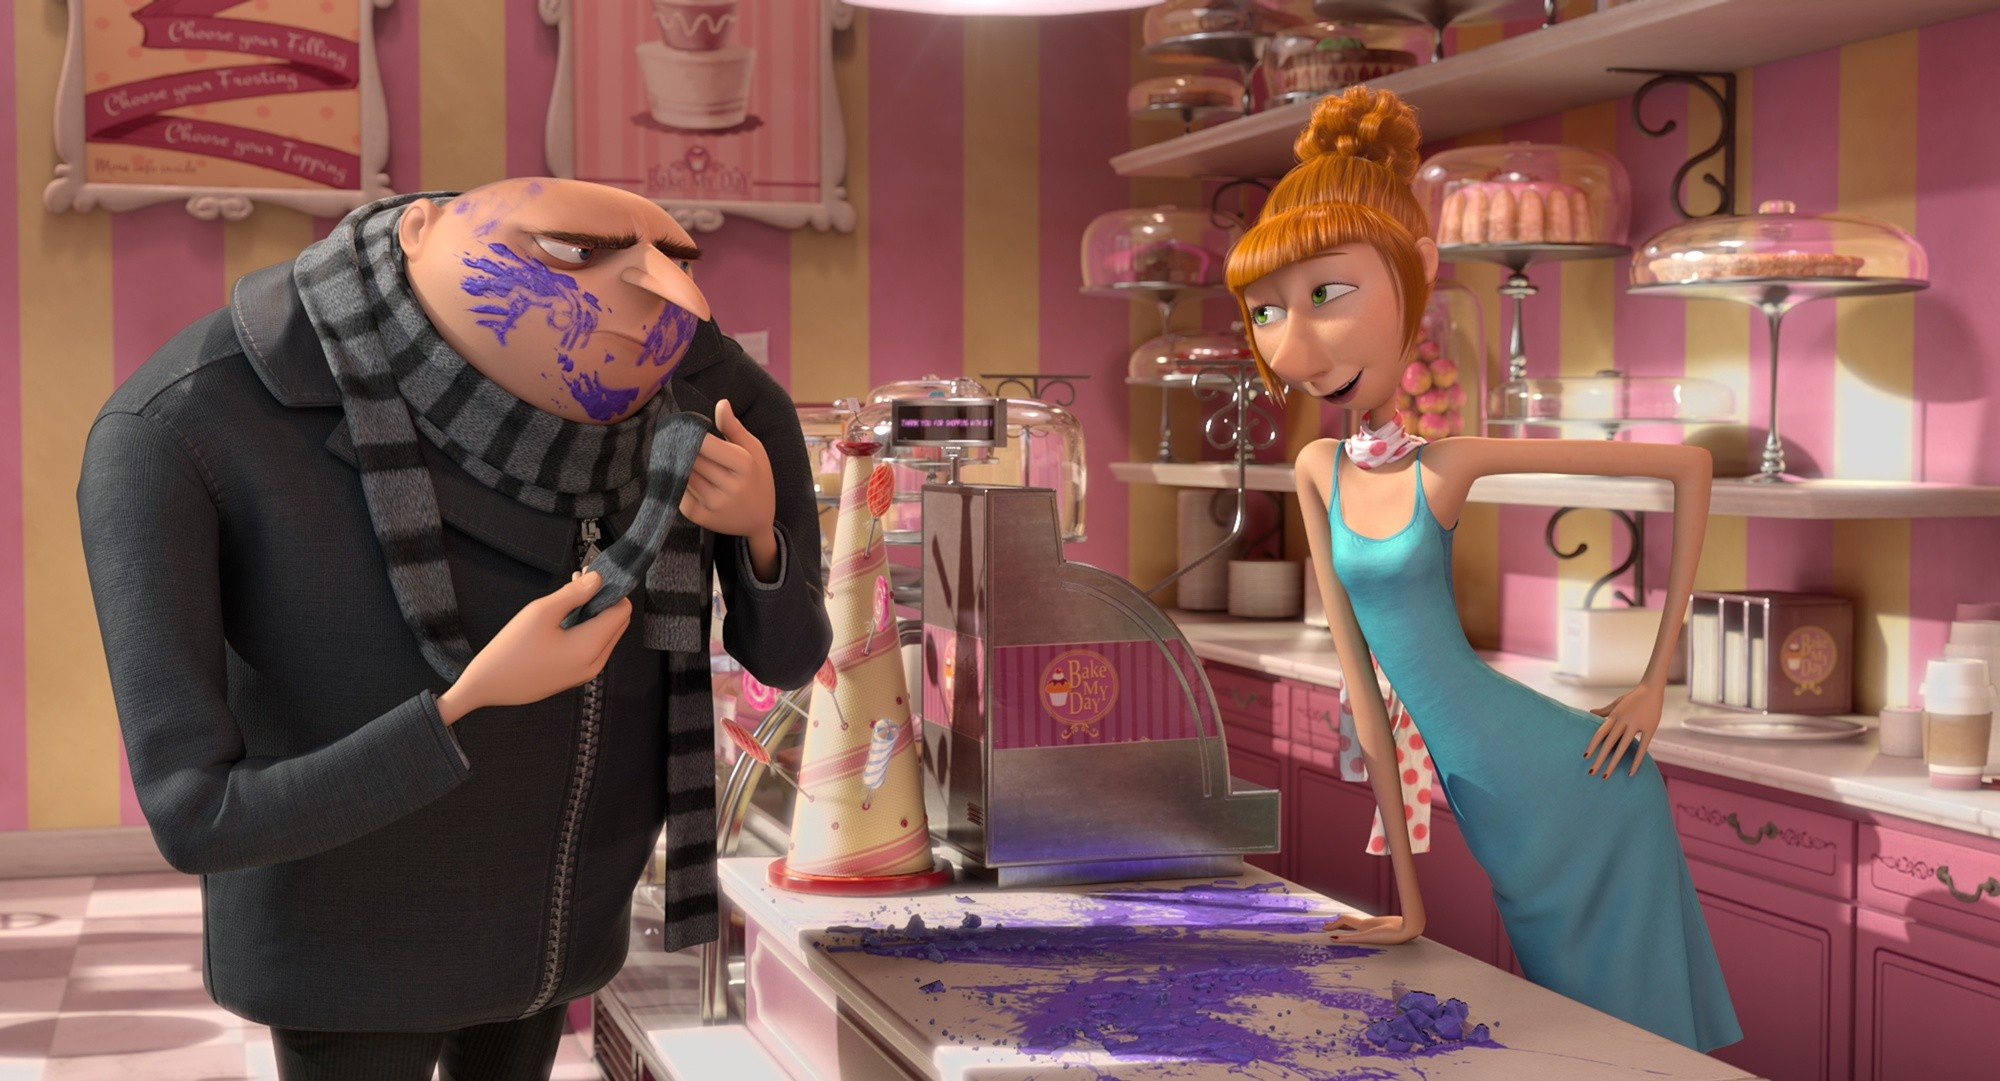 Gru (voice of Steve Carrel) and Lucy (Kristin Wilde) from Despicable Me 2. (Photo by Universal Pictures)